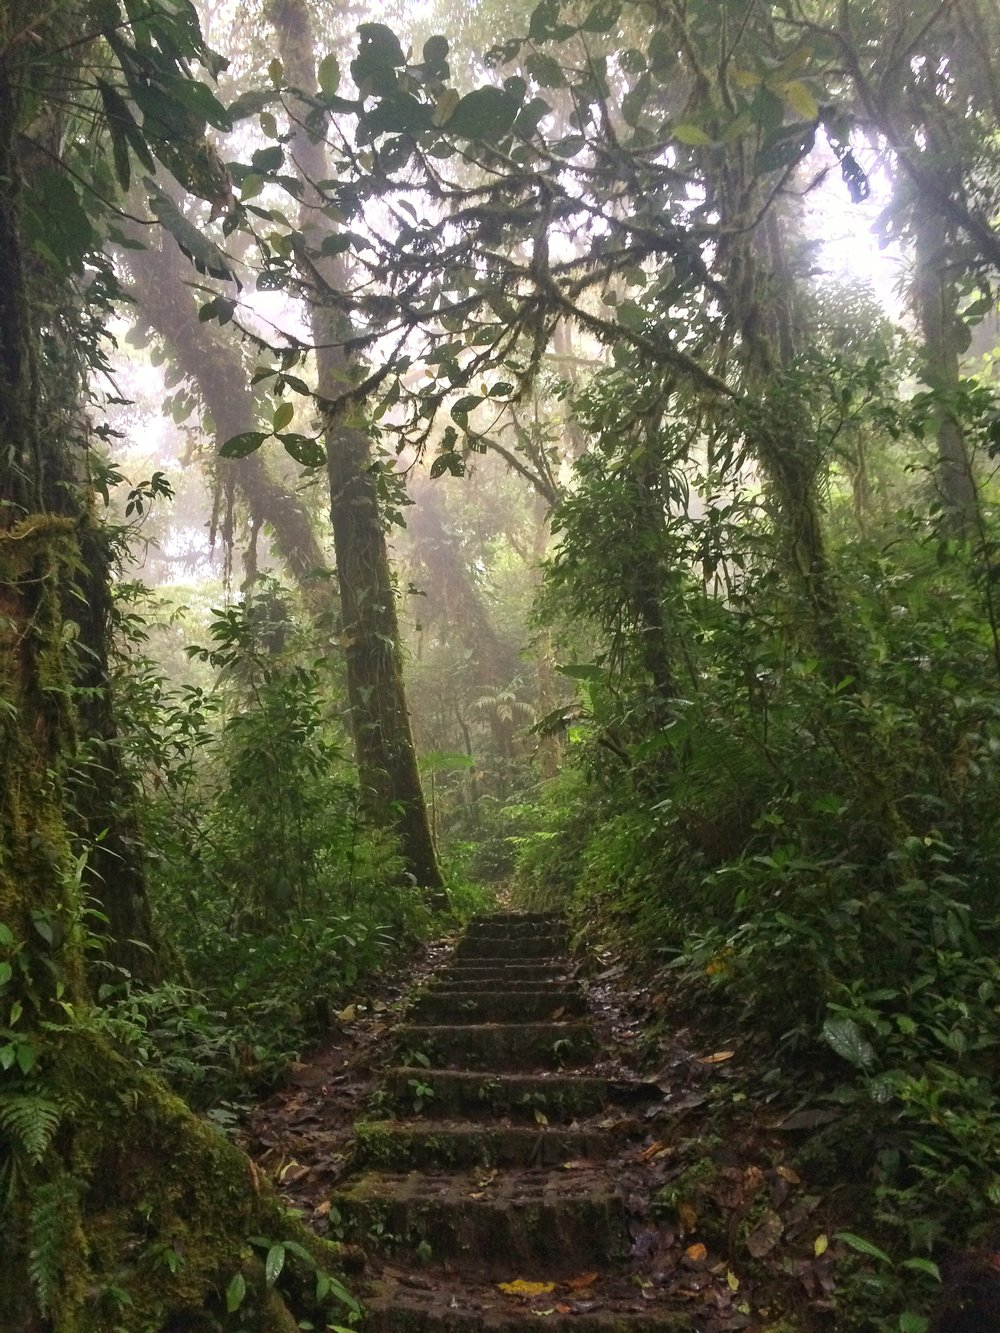 Hiking through Monteverde Cloud Forest is a unique, out of this world experience.